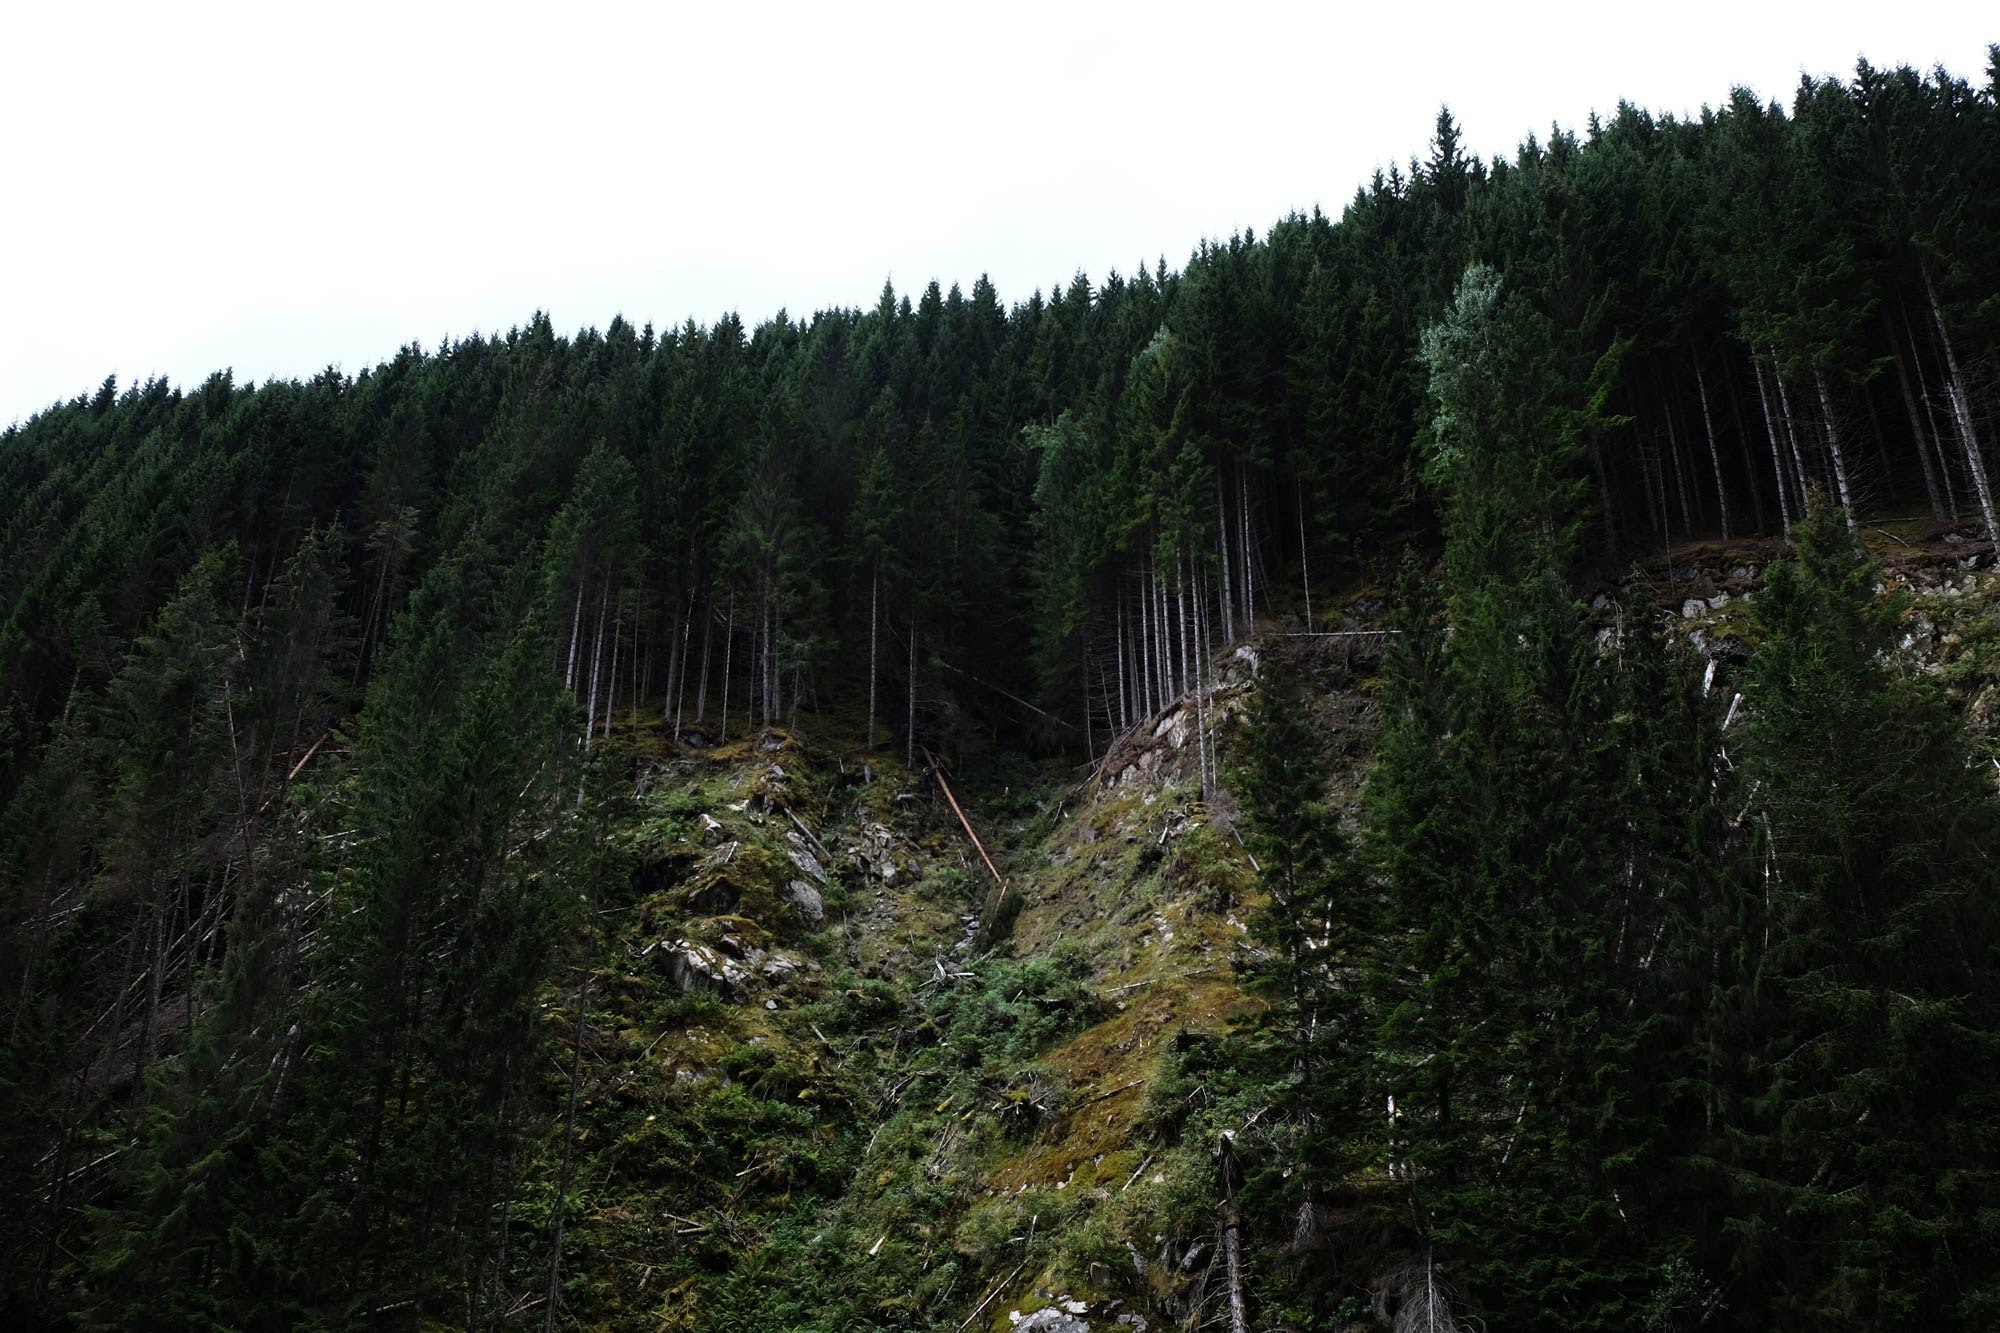 A coniferous forest on a rocky hill